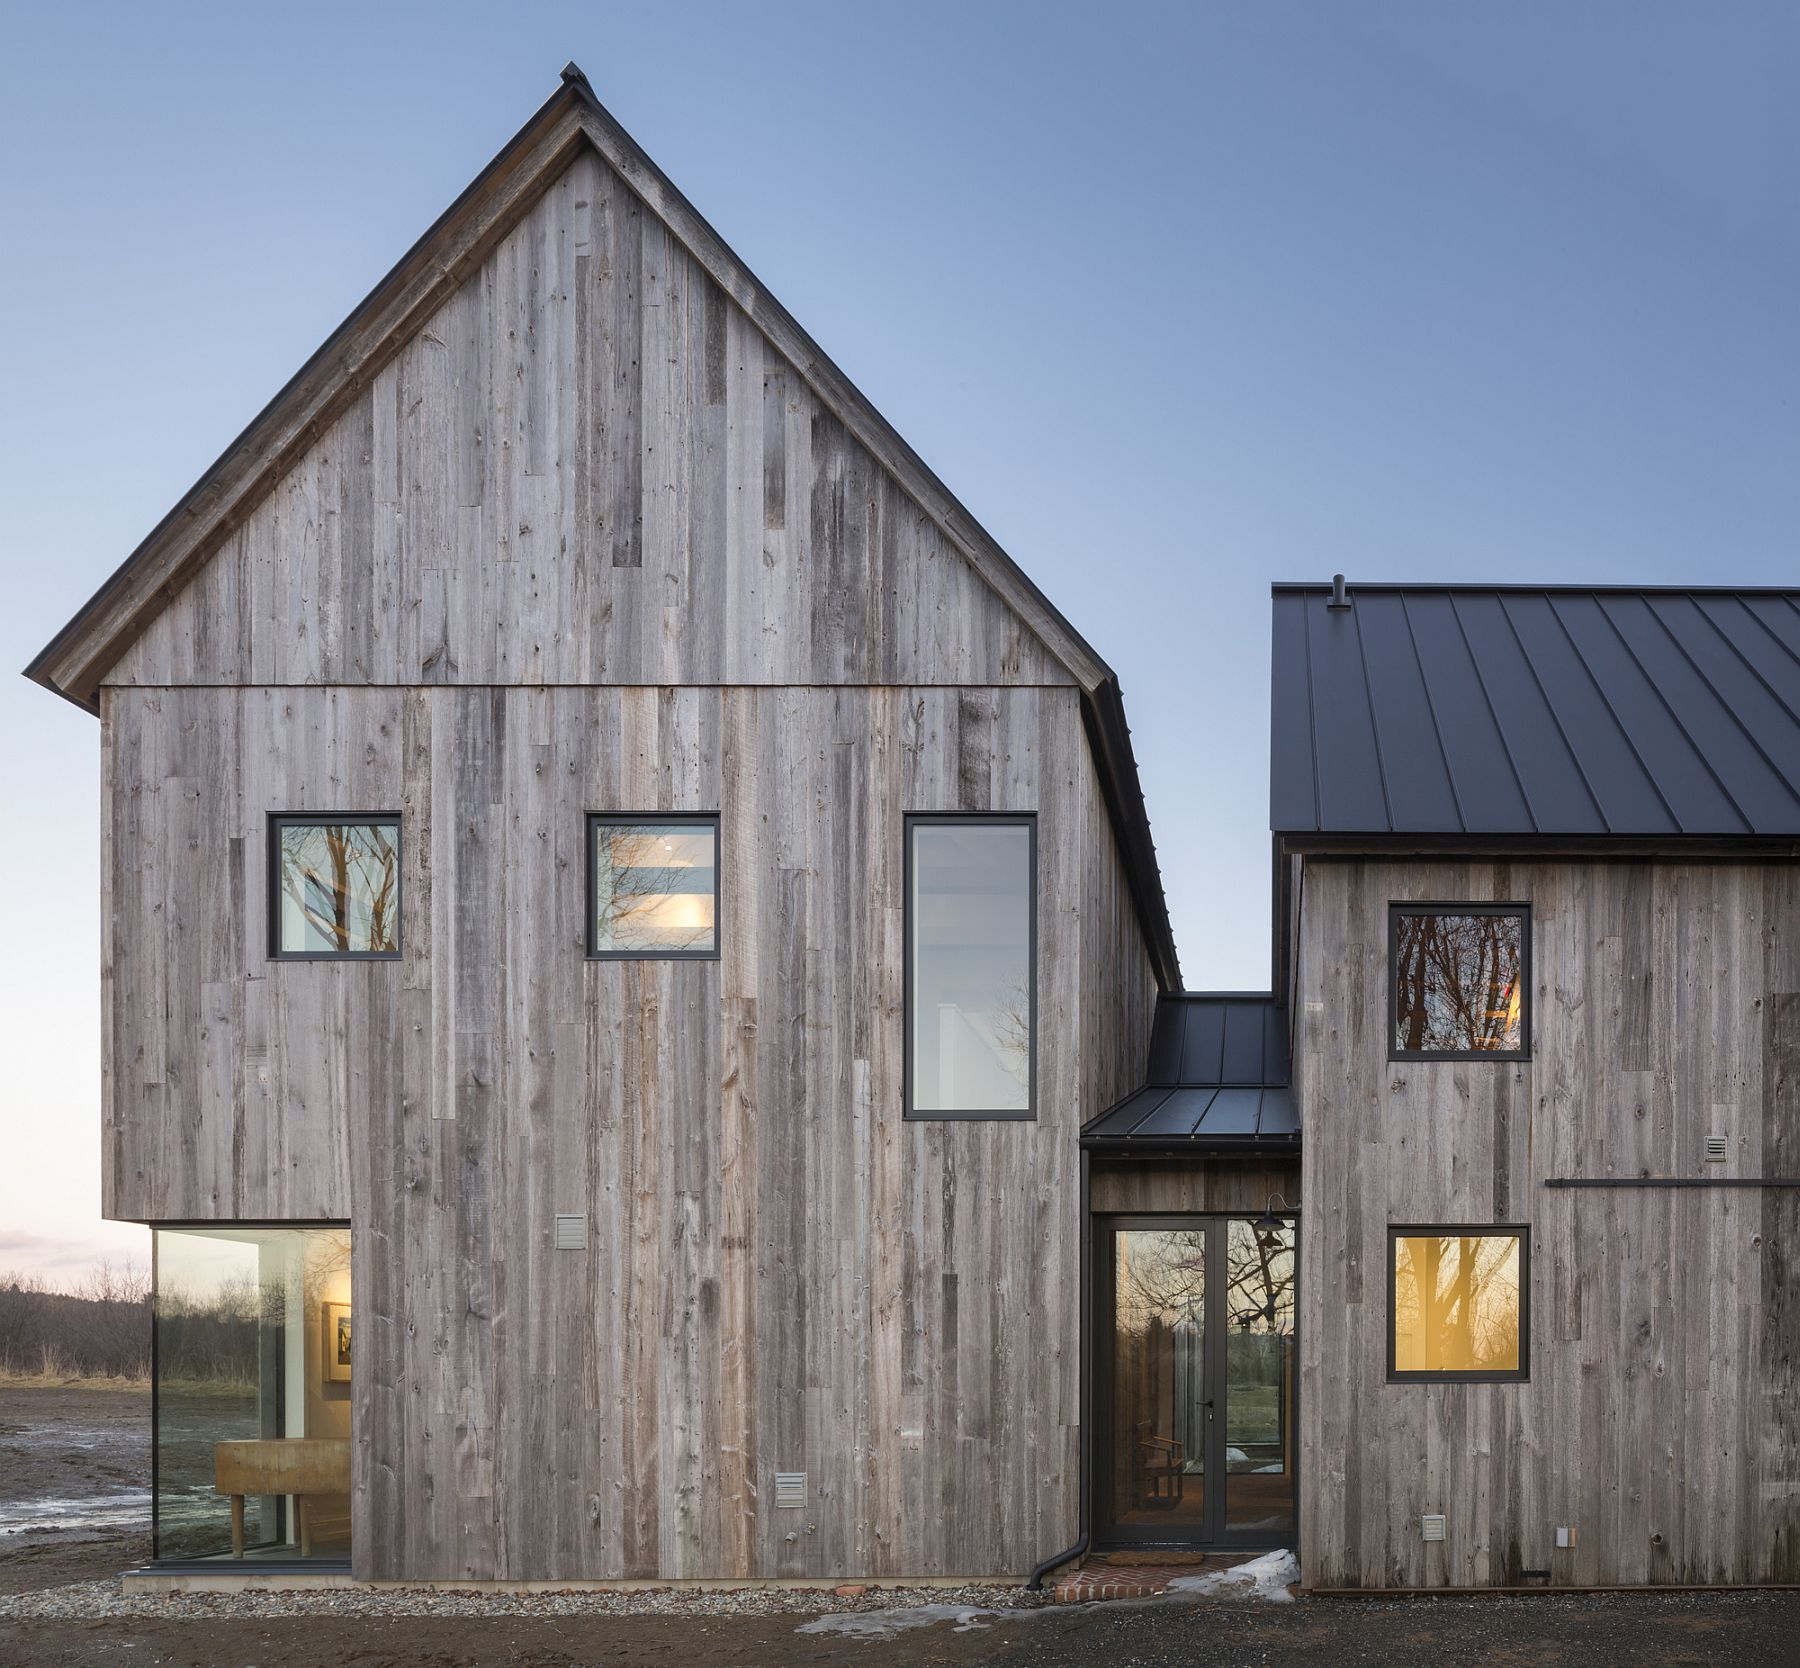 Townships farmhouse in quebec embraces modernity wrapped in rustic sheen for Modern rustic farmhouse exterior